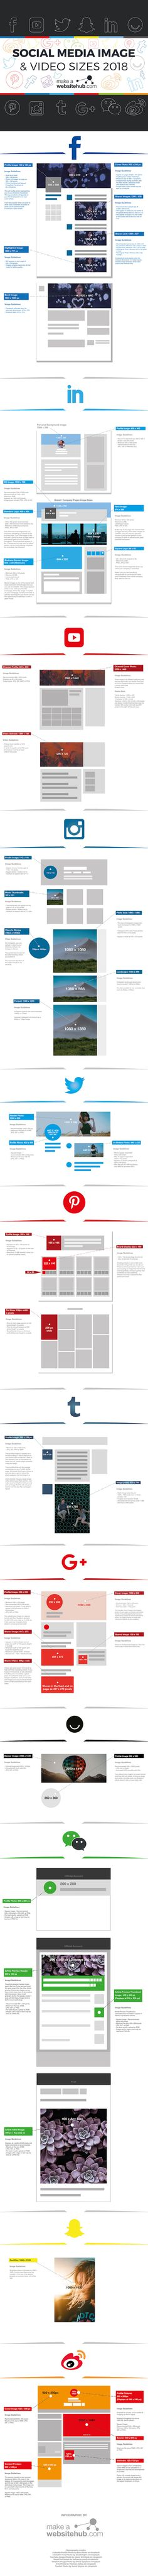 Infographic: 2018 Social Media Image And Video Sizes Cheat Sheet - DesignTAXI.com